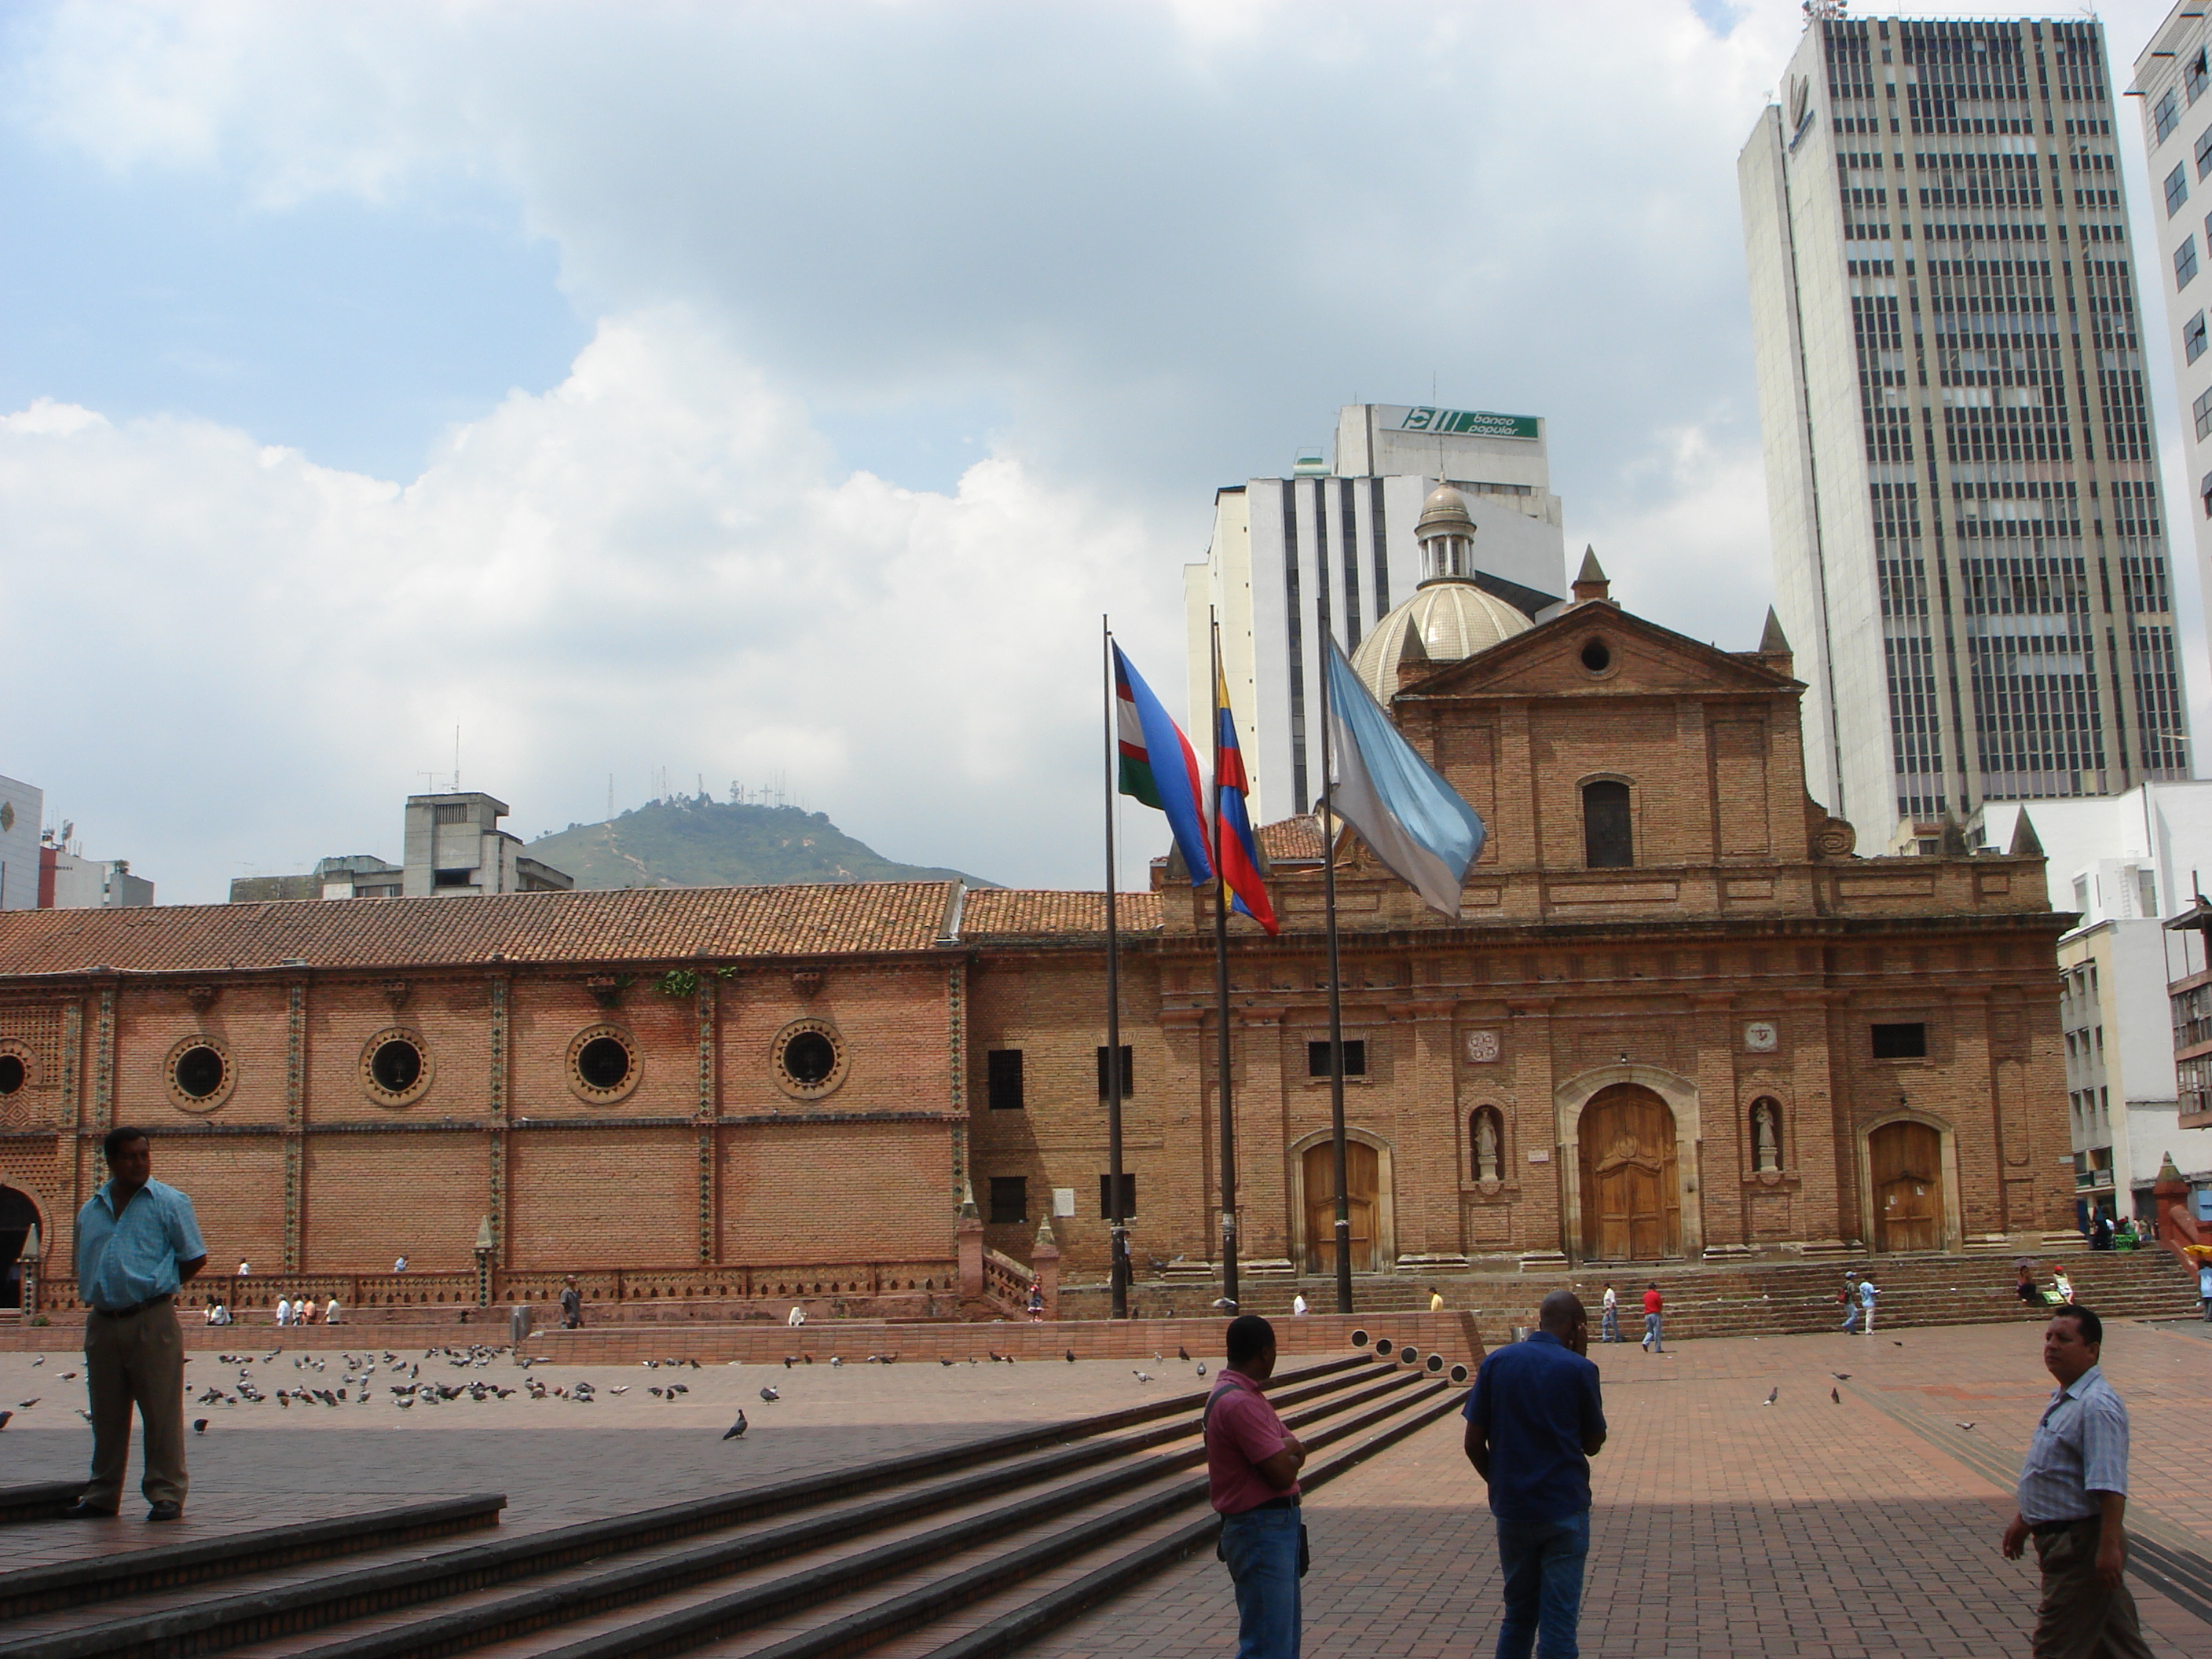 Cali Colombia  City pictures : Description Buildings in Cali, Colombia